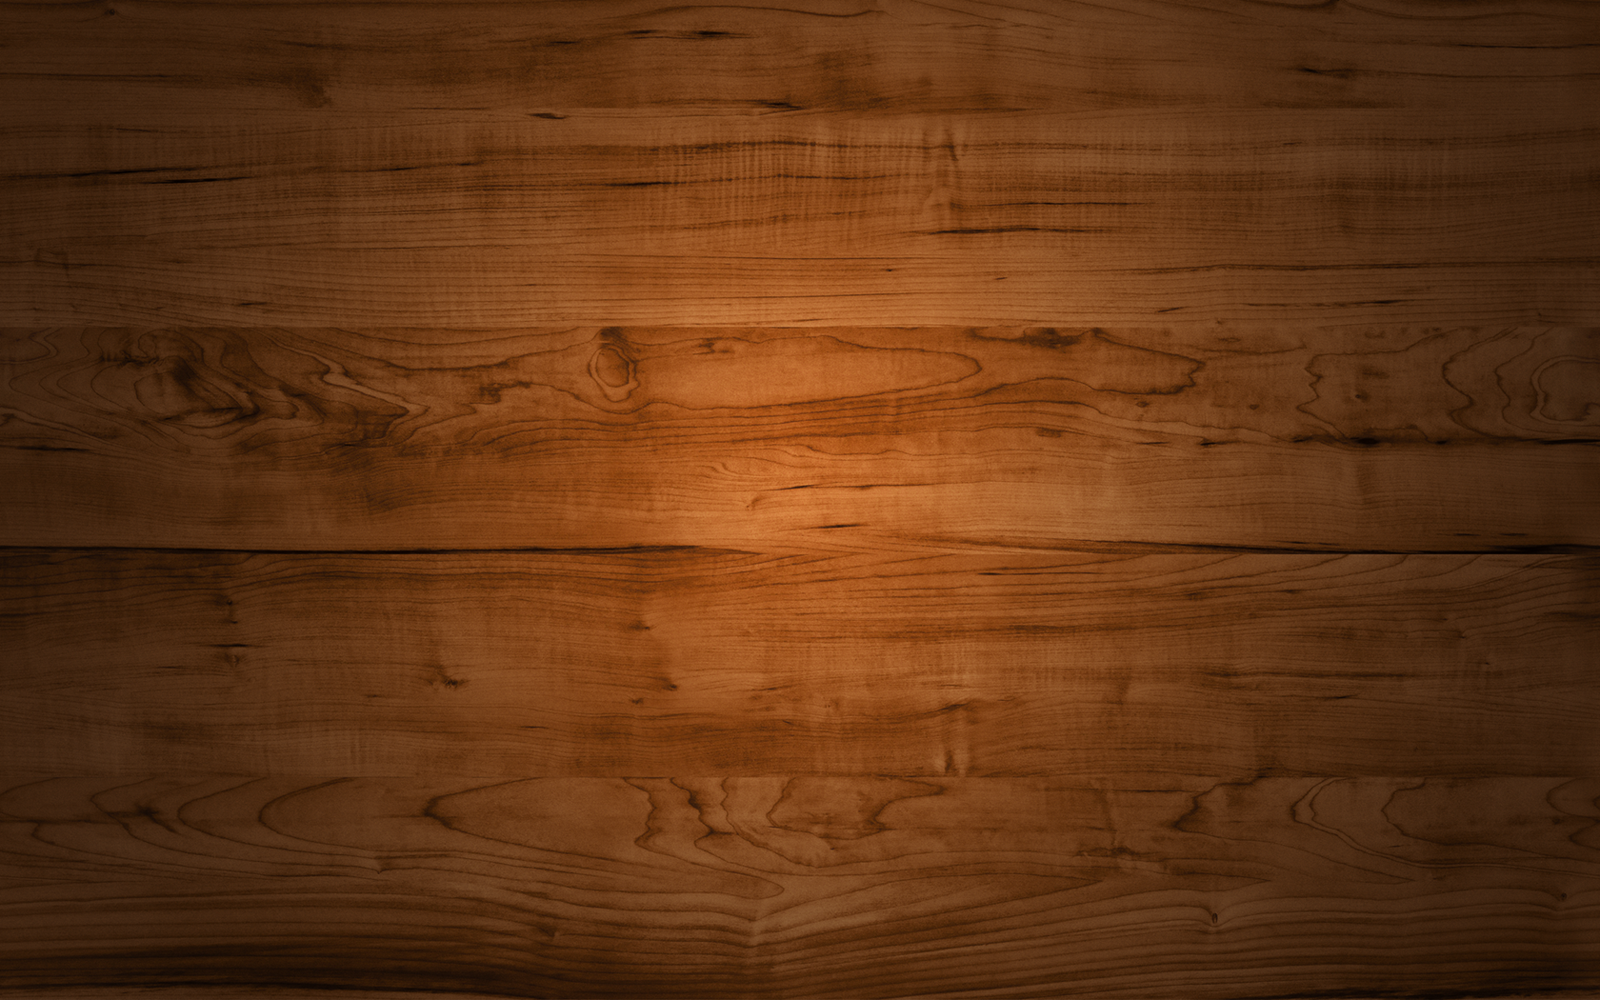 Brown Wallpaper Png - Index of /main/wp-content/uploads/2016/01